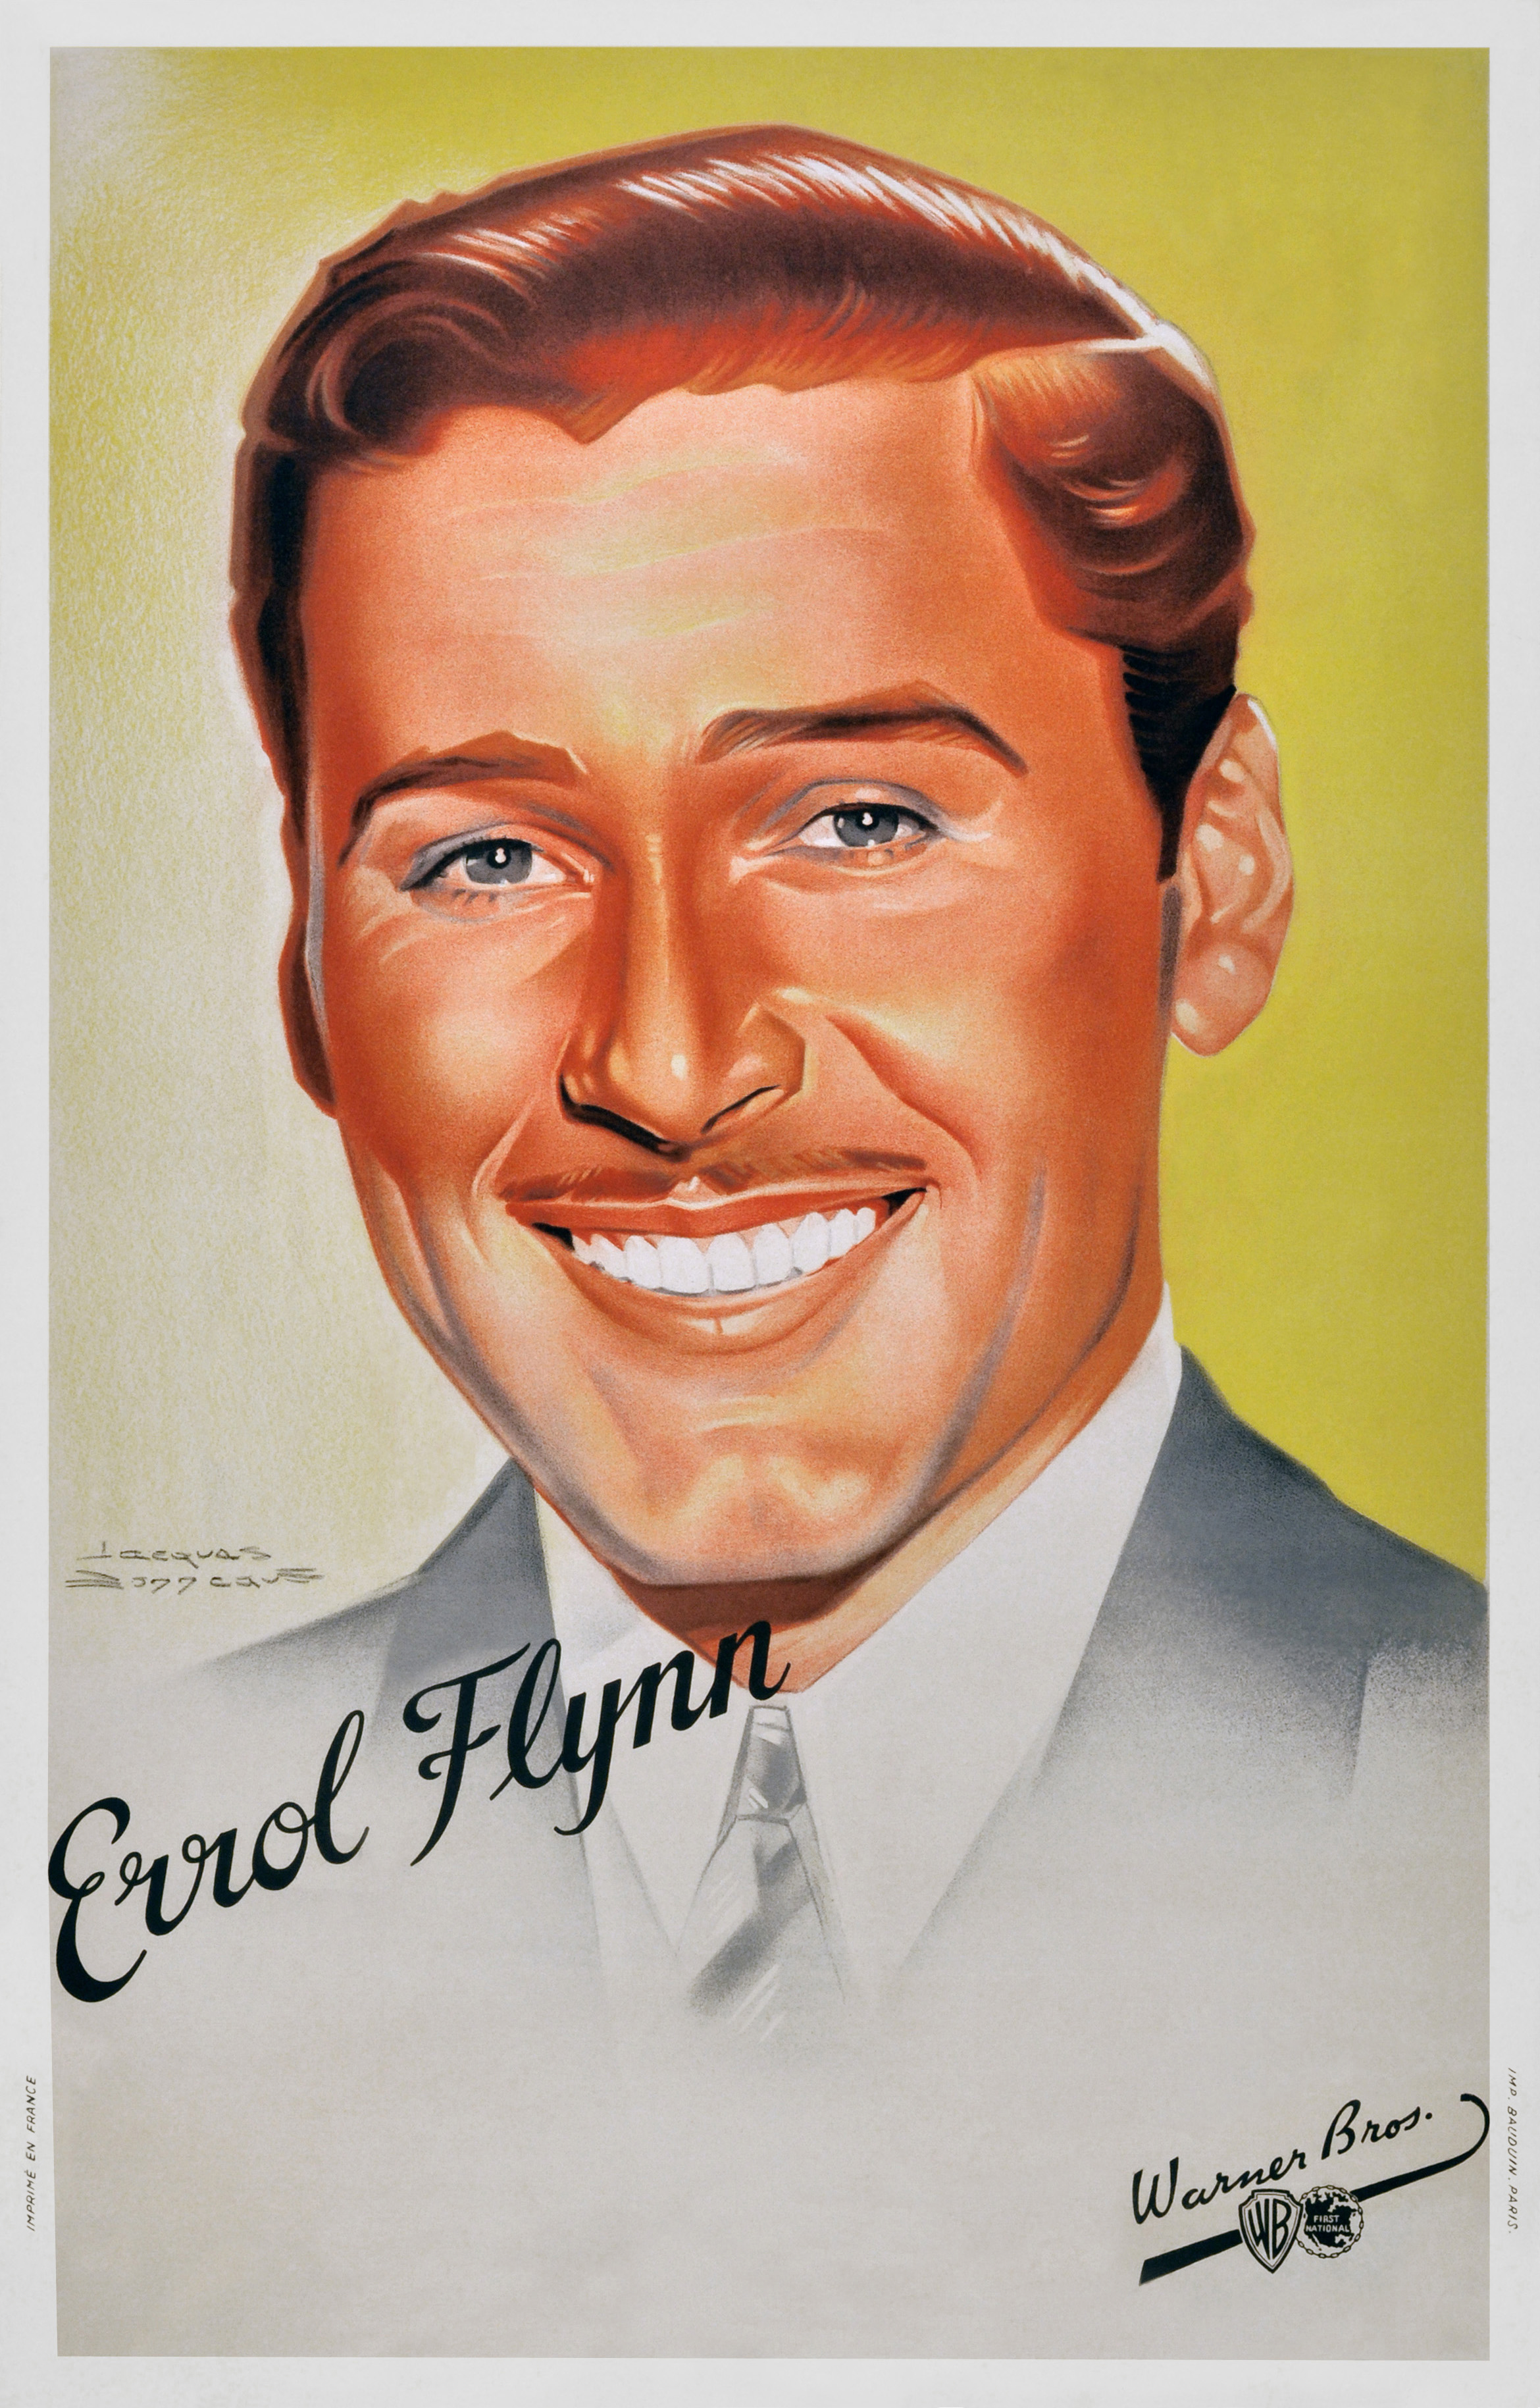 Errol%20Flynn%20French%20Personality%20Poster%20(Late%201930s).jpg